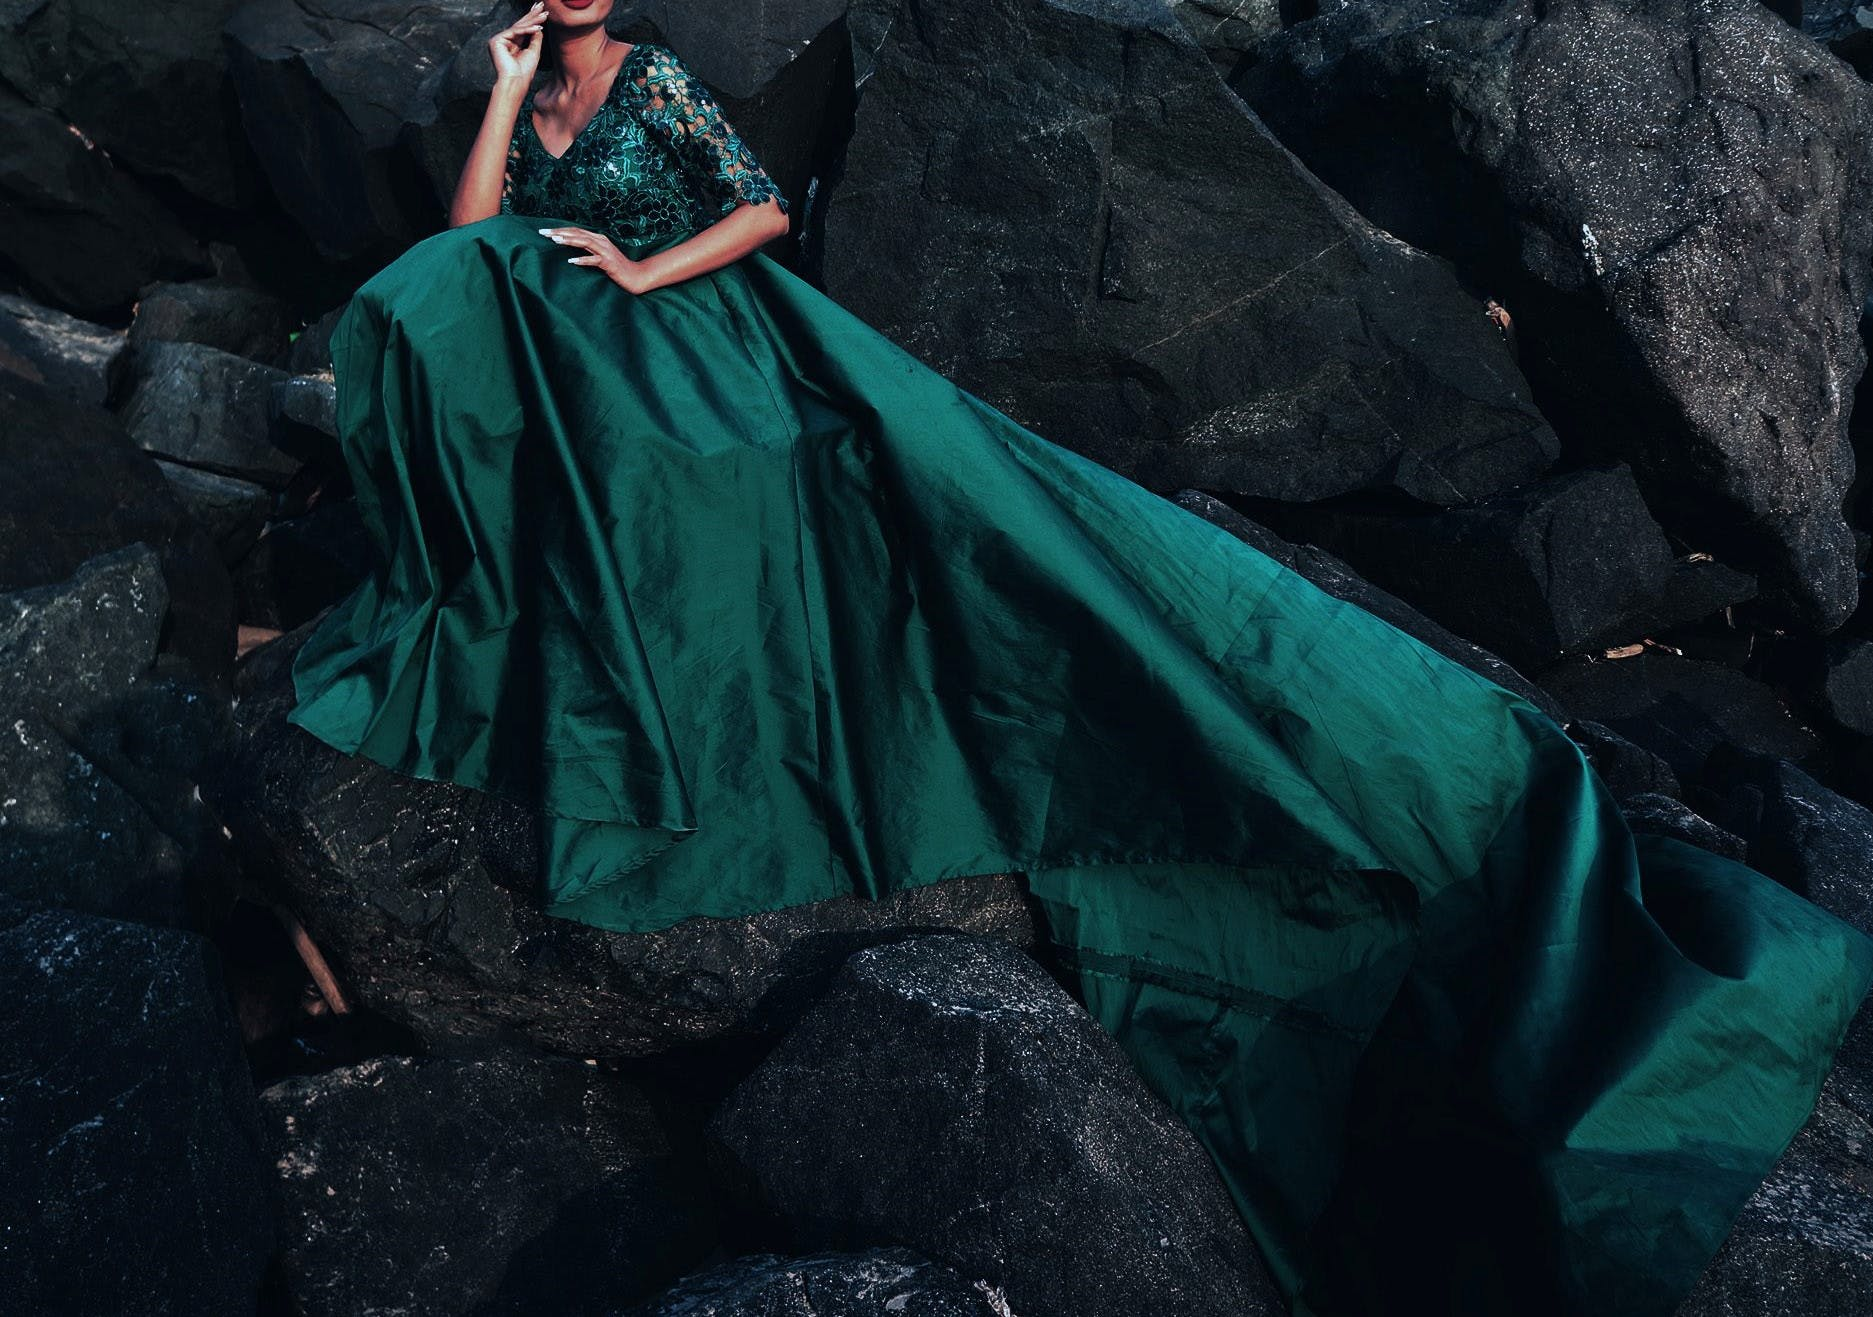 Clothing,Dress,Green,Gown,Fashion,Formal wear,Satin,Costume design,Haute couture,Outerwear